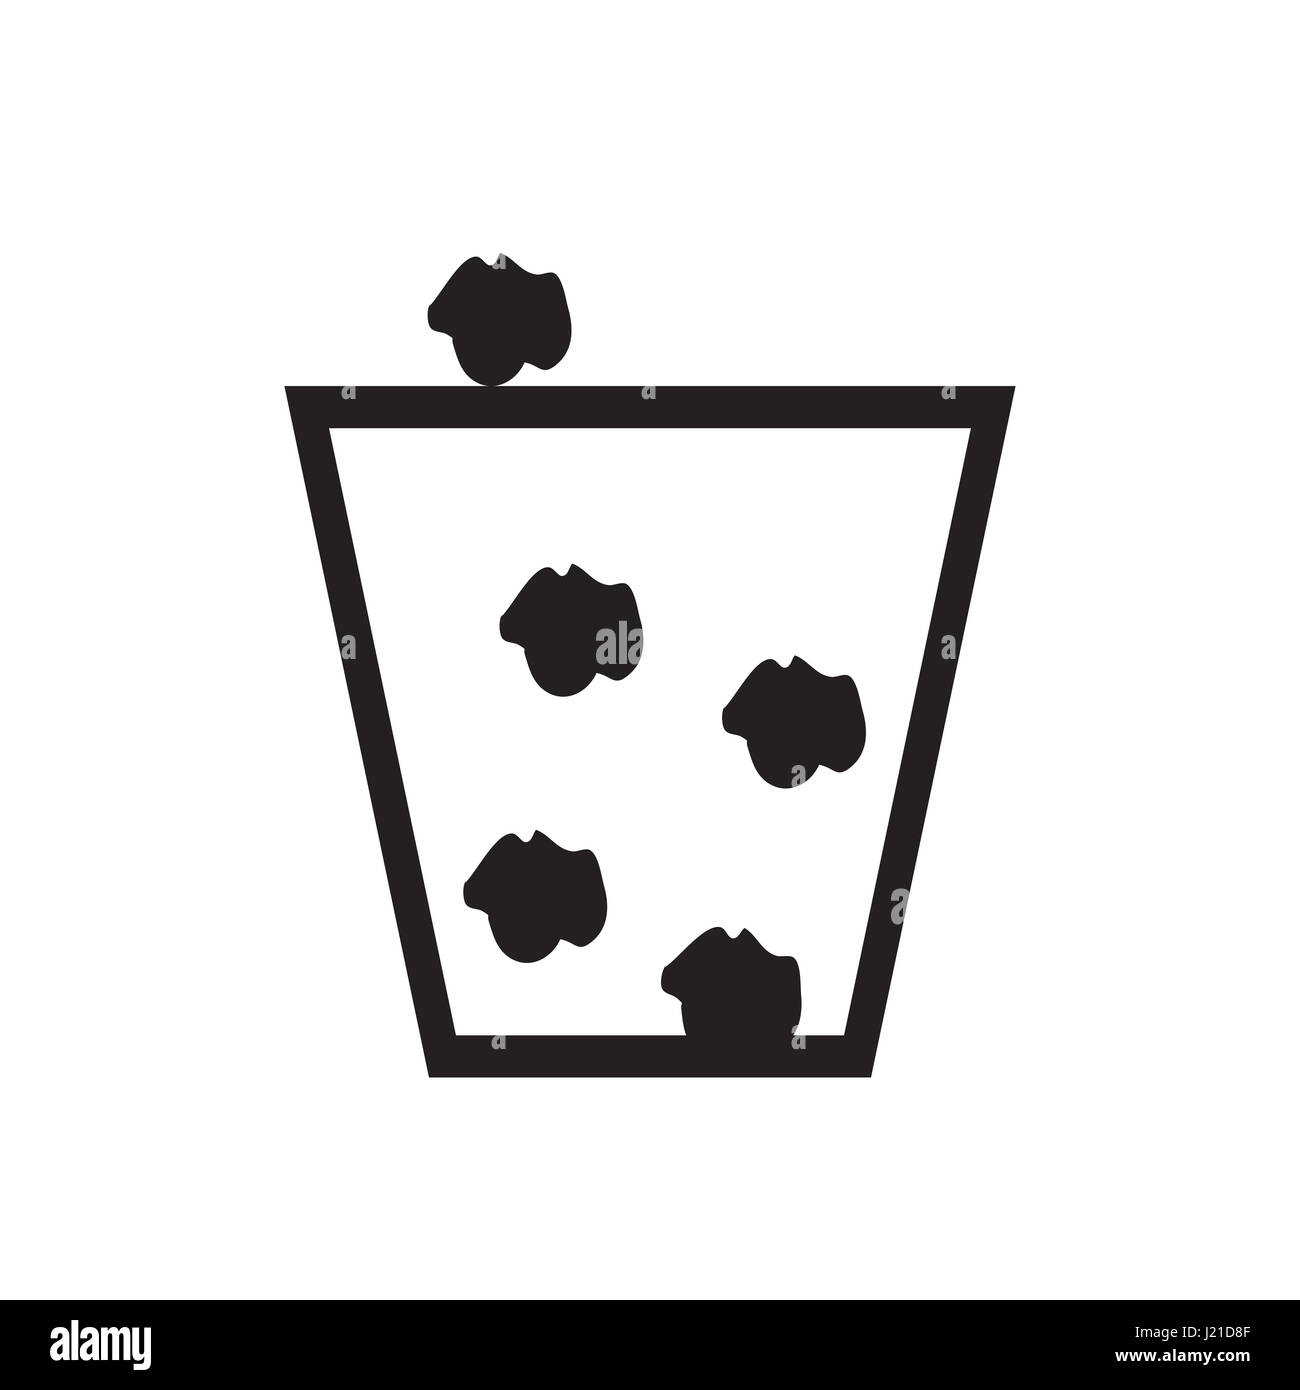 trash can icon - Stock Image